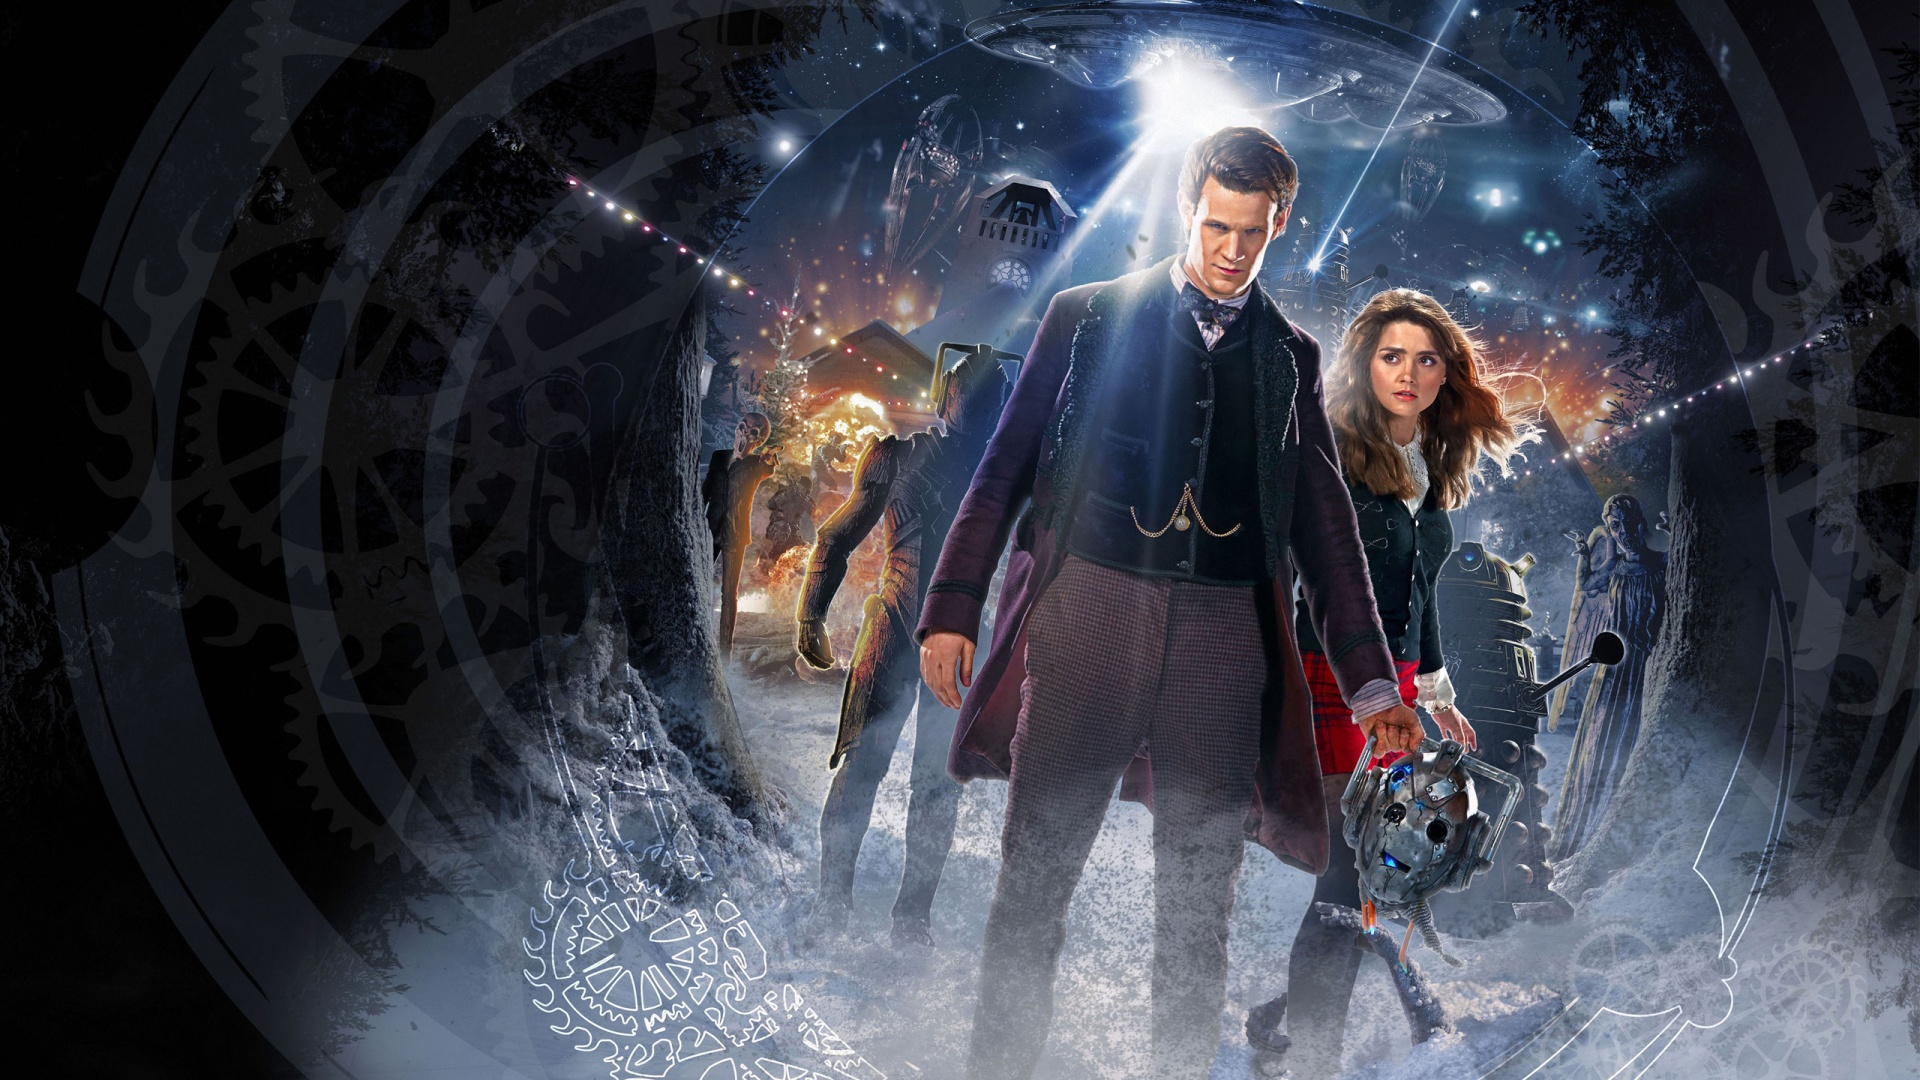 Doctor Who Time of the Doctor wallpaper 1920x1080